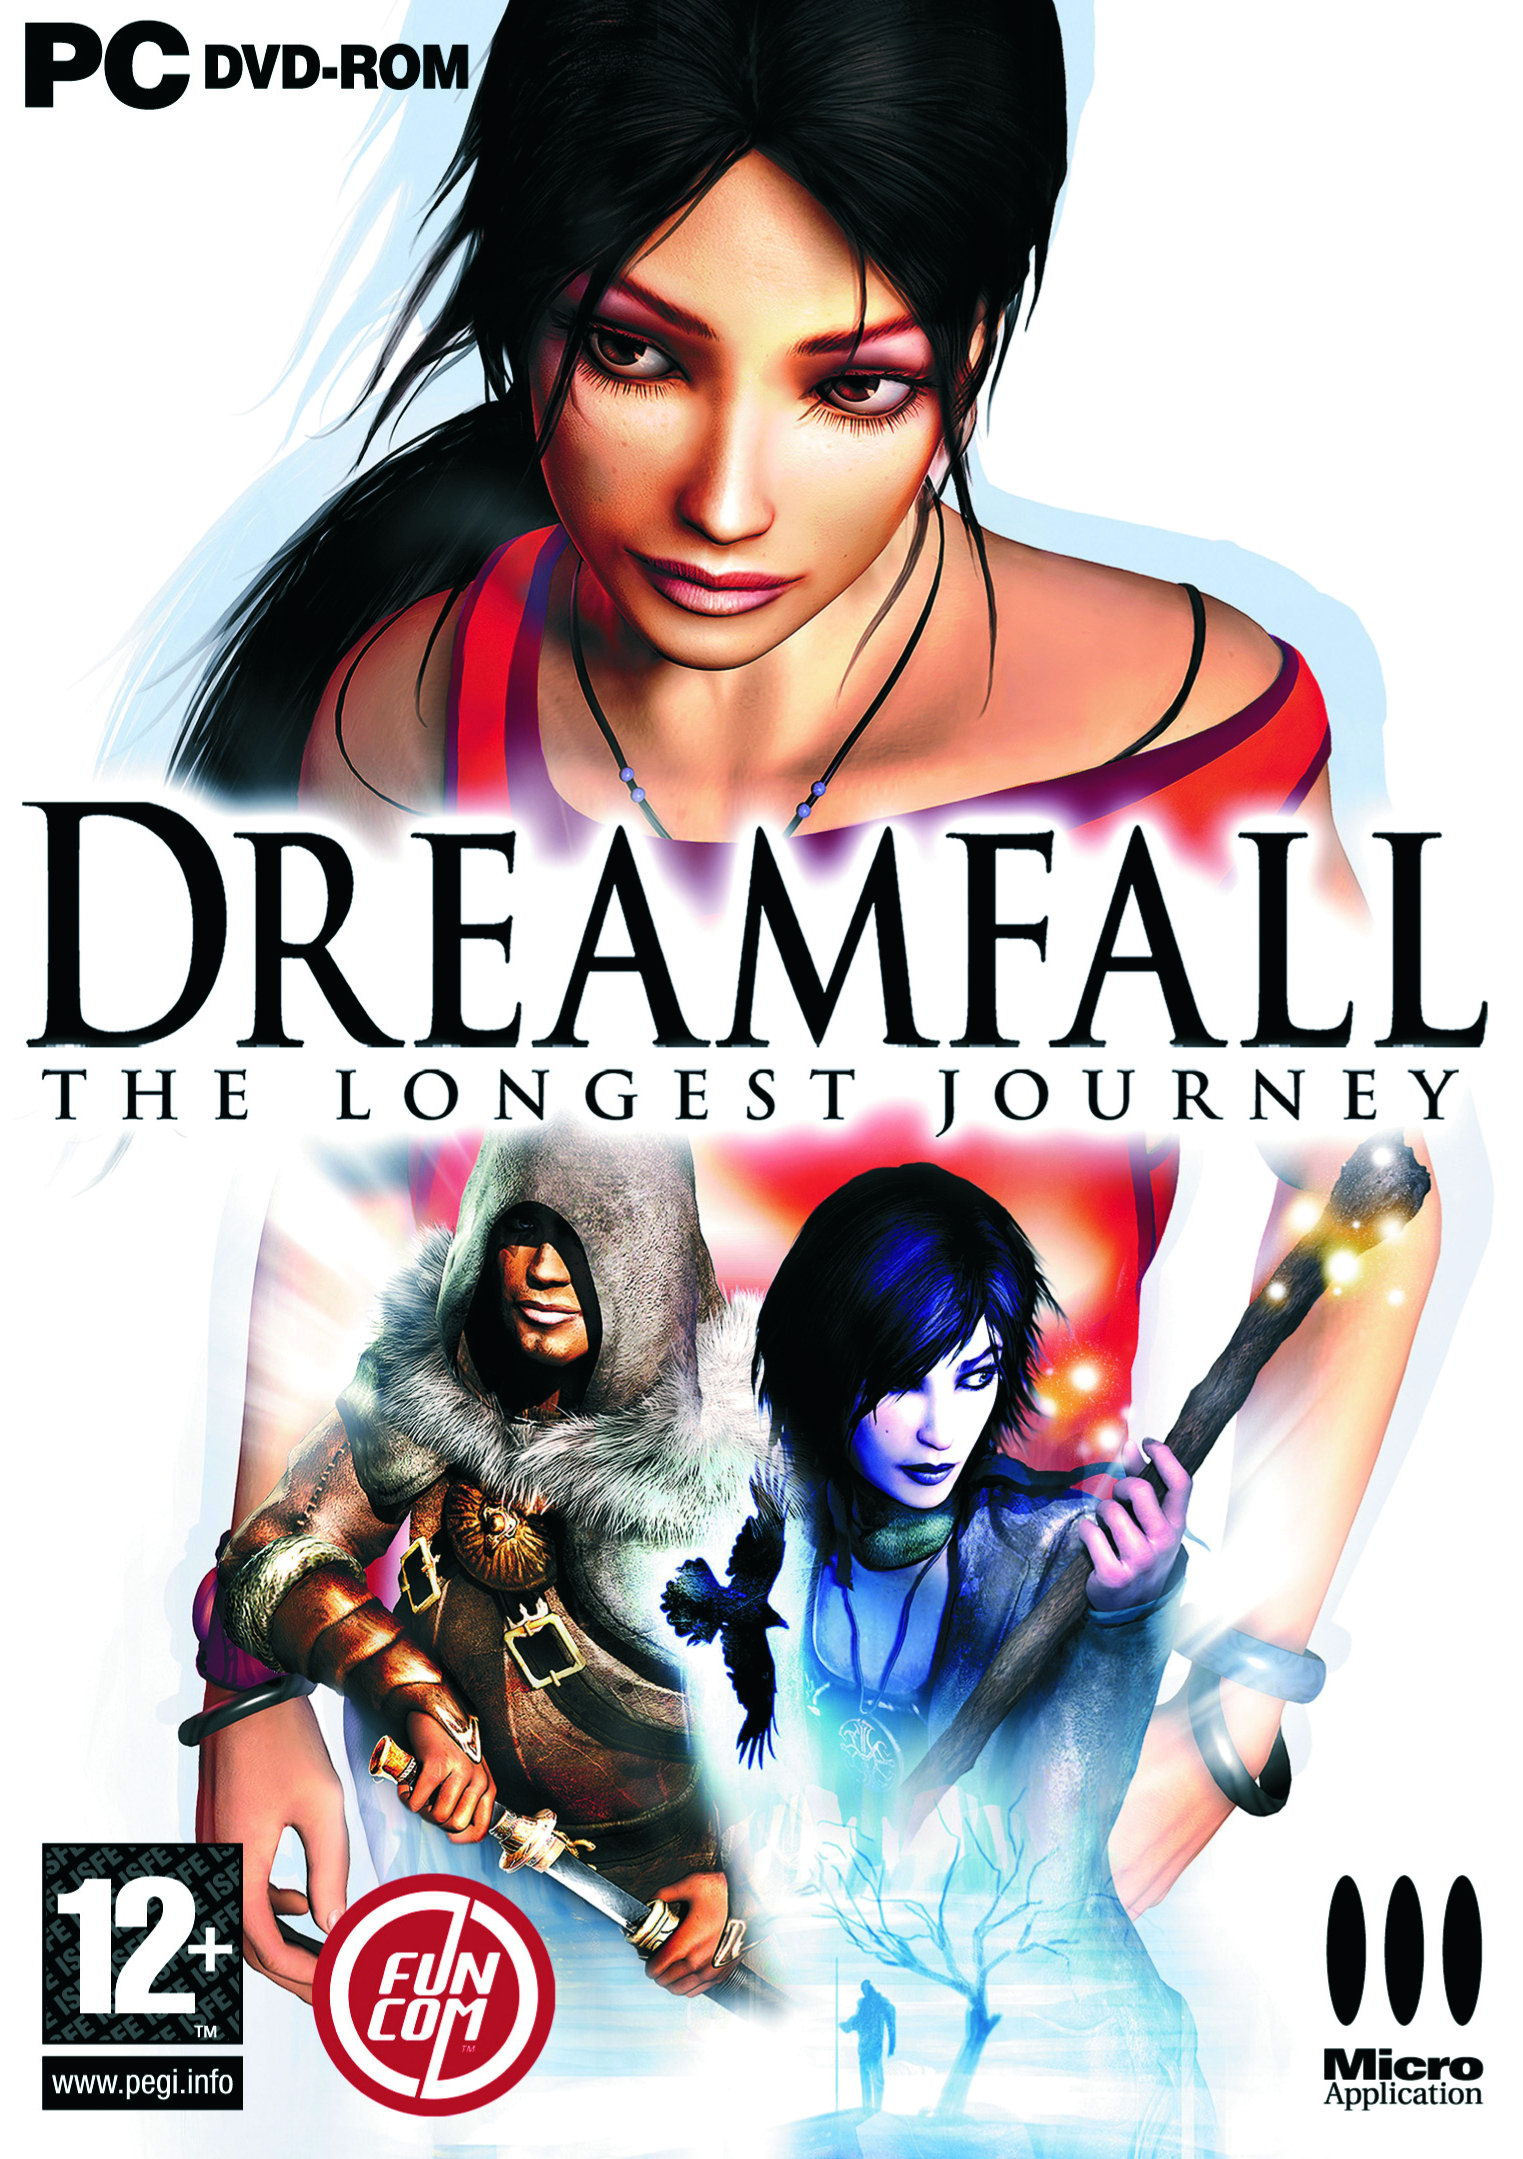 Dream fall the longest journey porn hentia movie